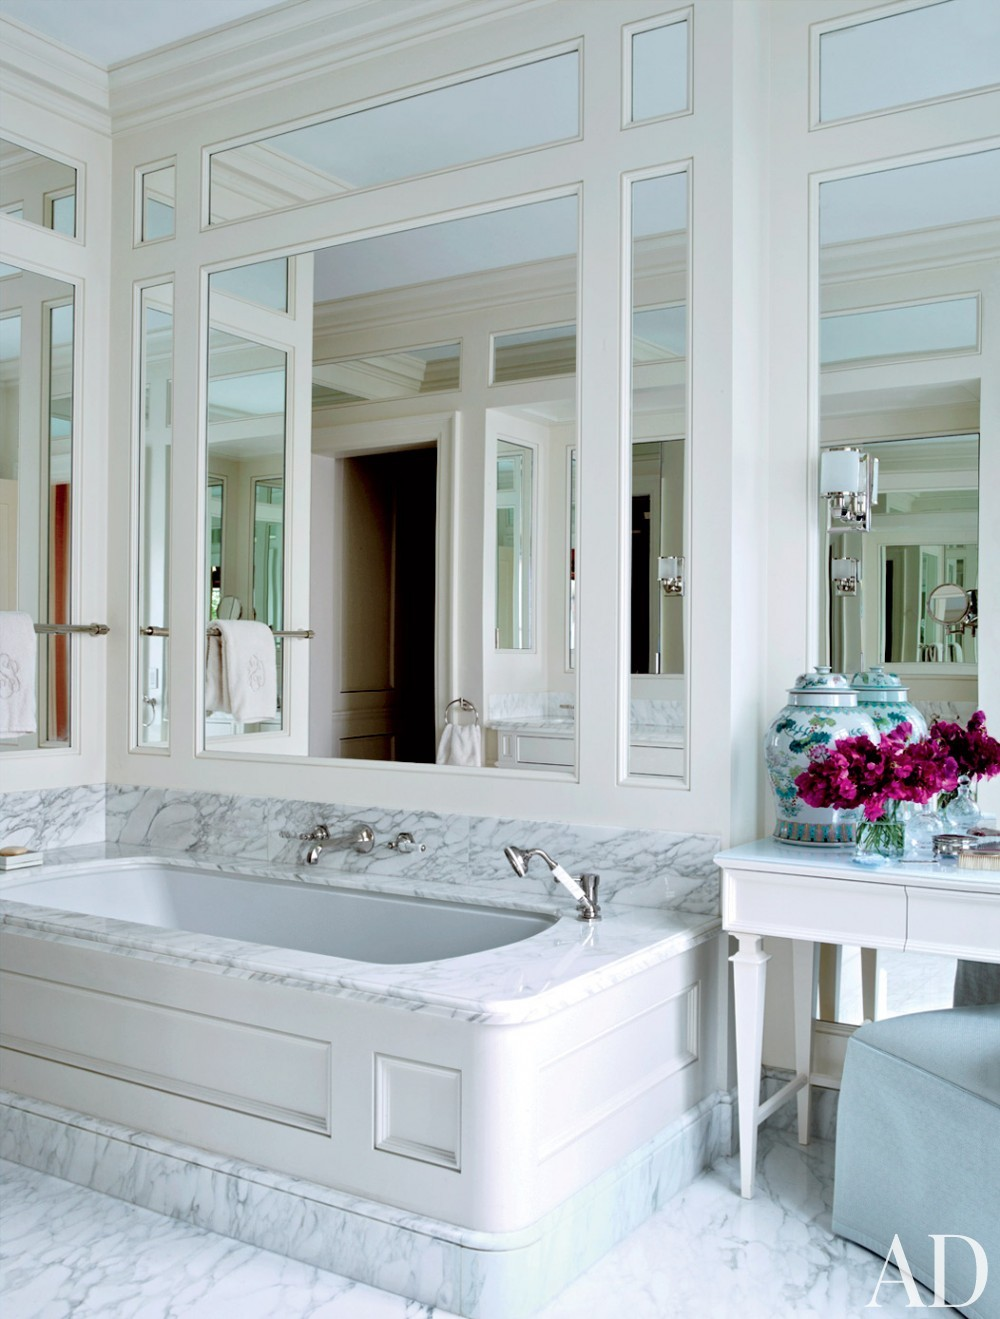 Modern Bathroom and Robert A.M. Stern Architects in Greenwich Village, NY